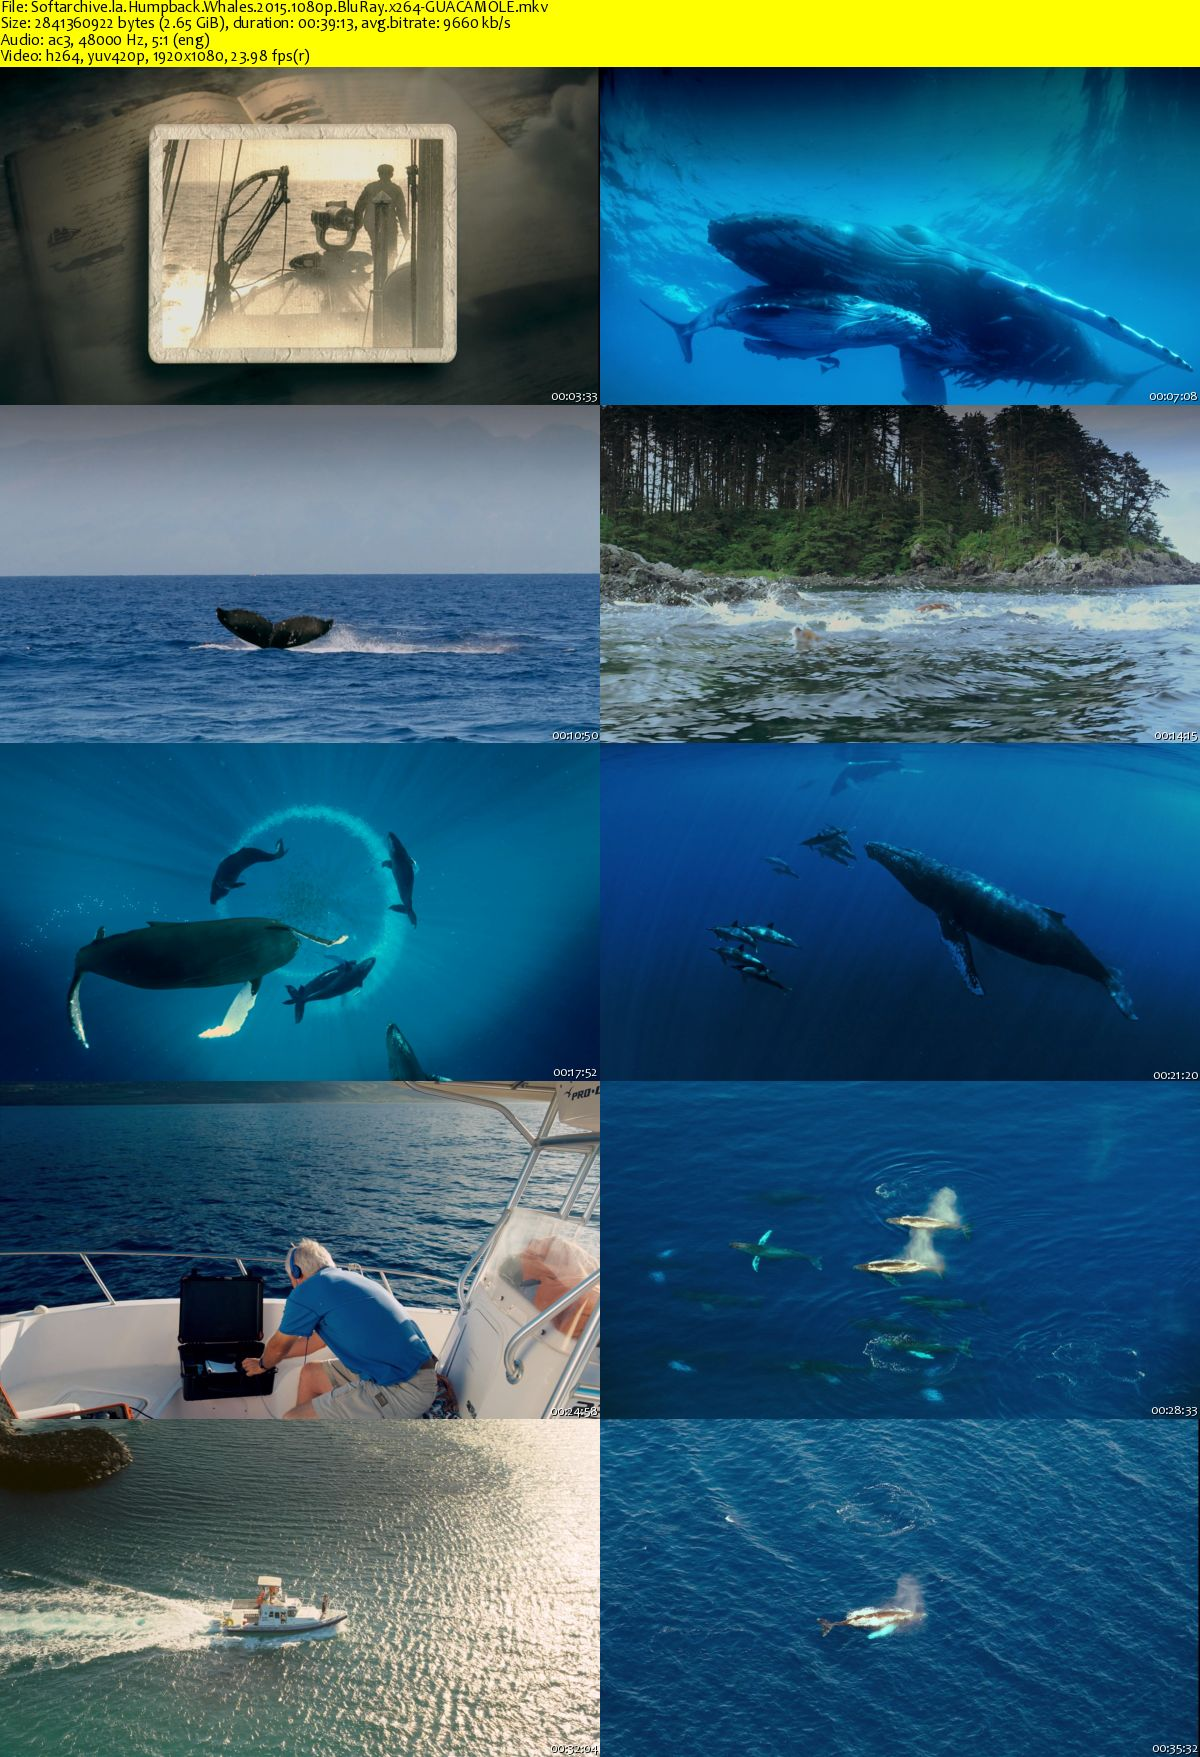 an in depth look at the whale